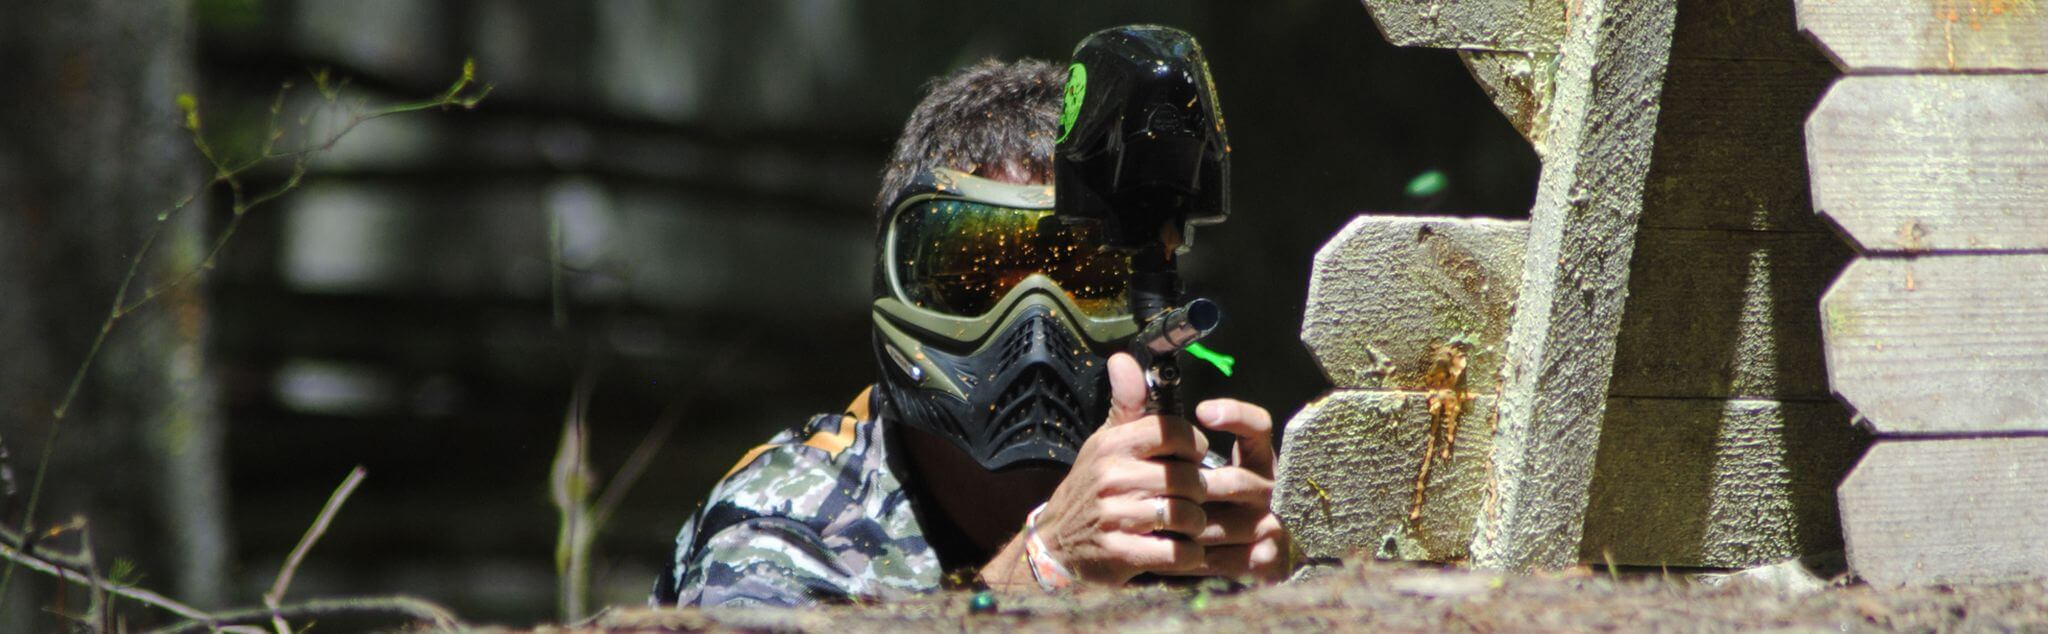 Paintball en Mallorca